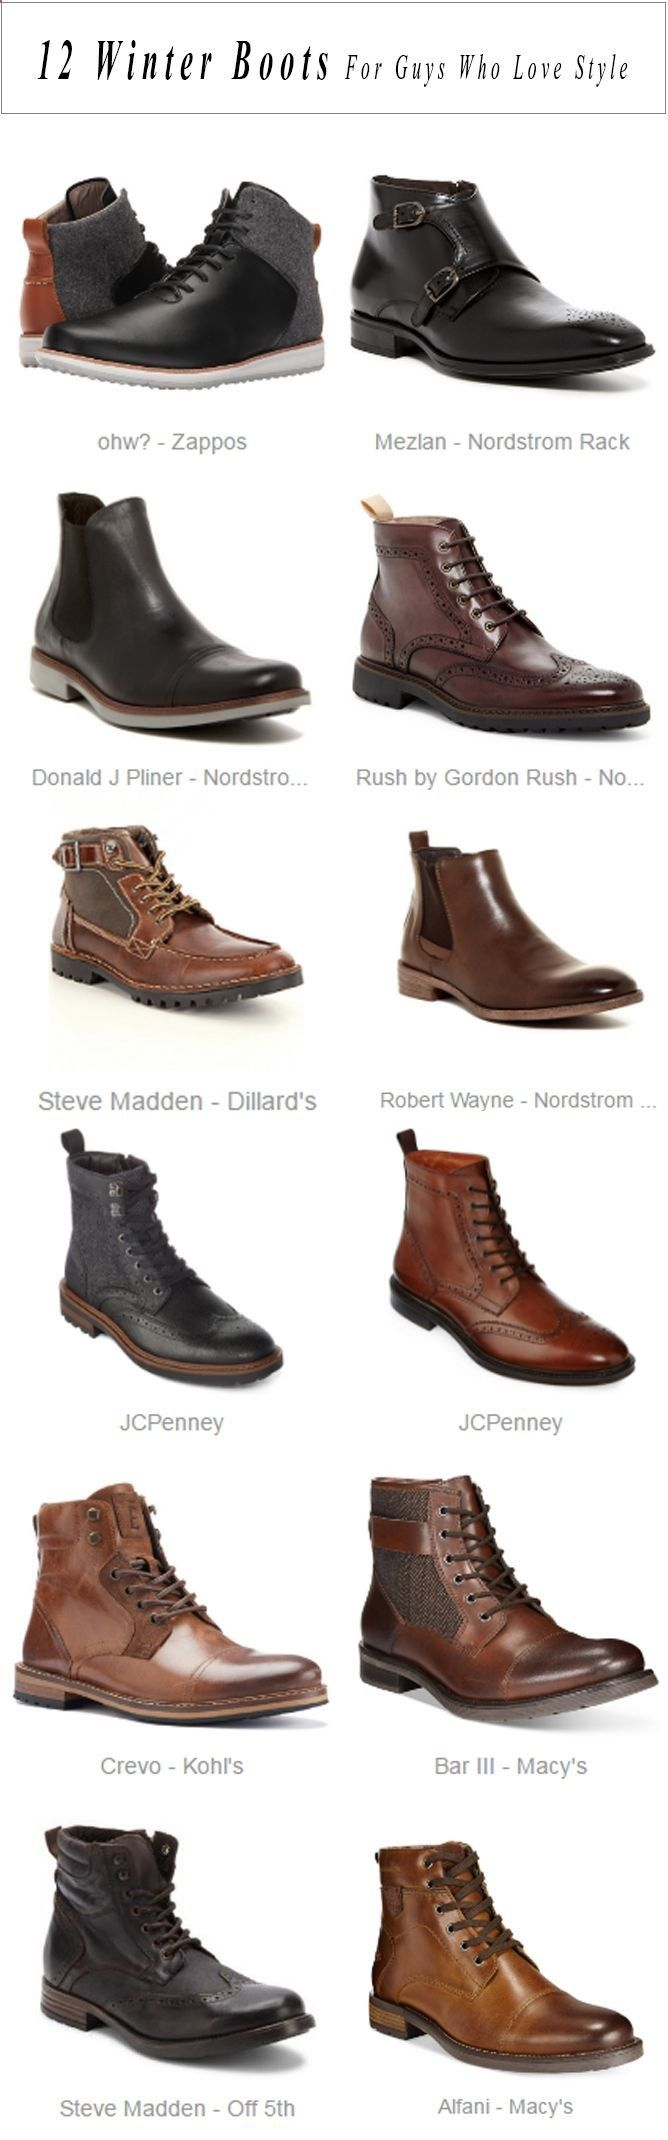 Boots for dresses fashion winter boots for guys who love style